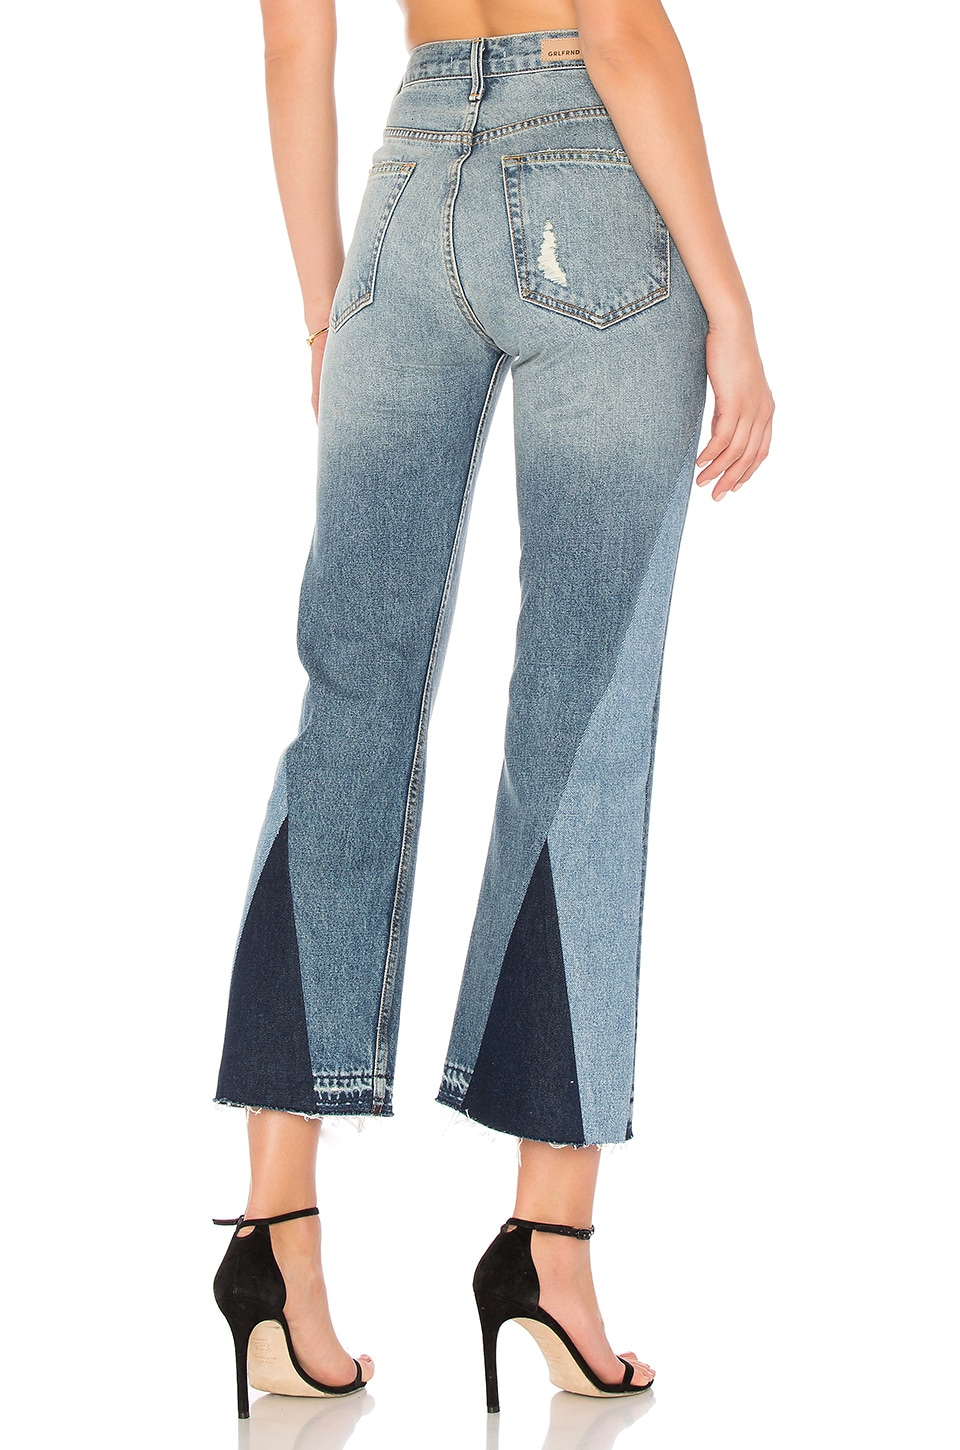 x REVOLVE Linda Pop Crop Jean by Grlfrnd